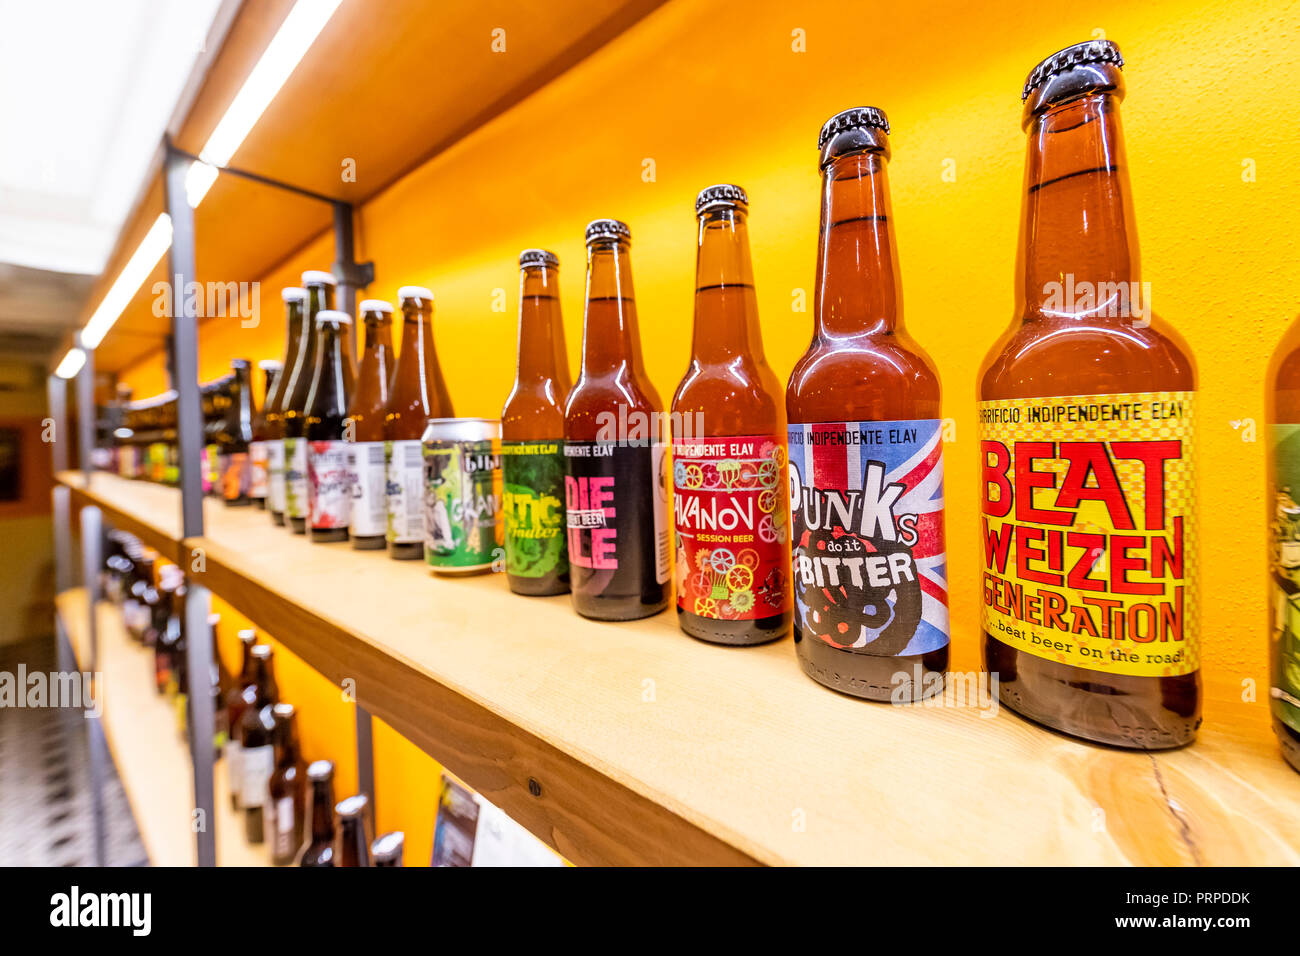 The artisan craft beer movement is strong in Italy. Her in Lucca is artigianale beer selling many varieties. Lucca city, Italy - Stock Image